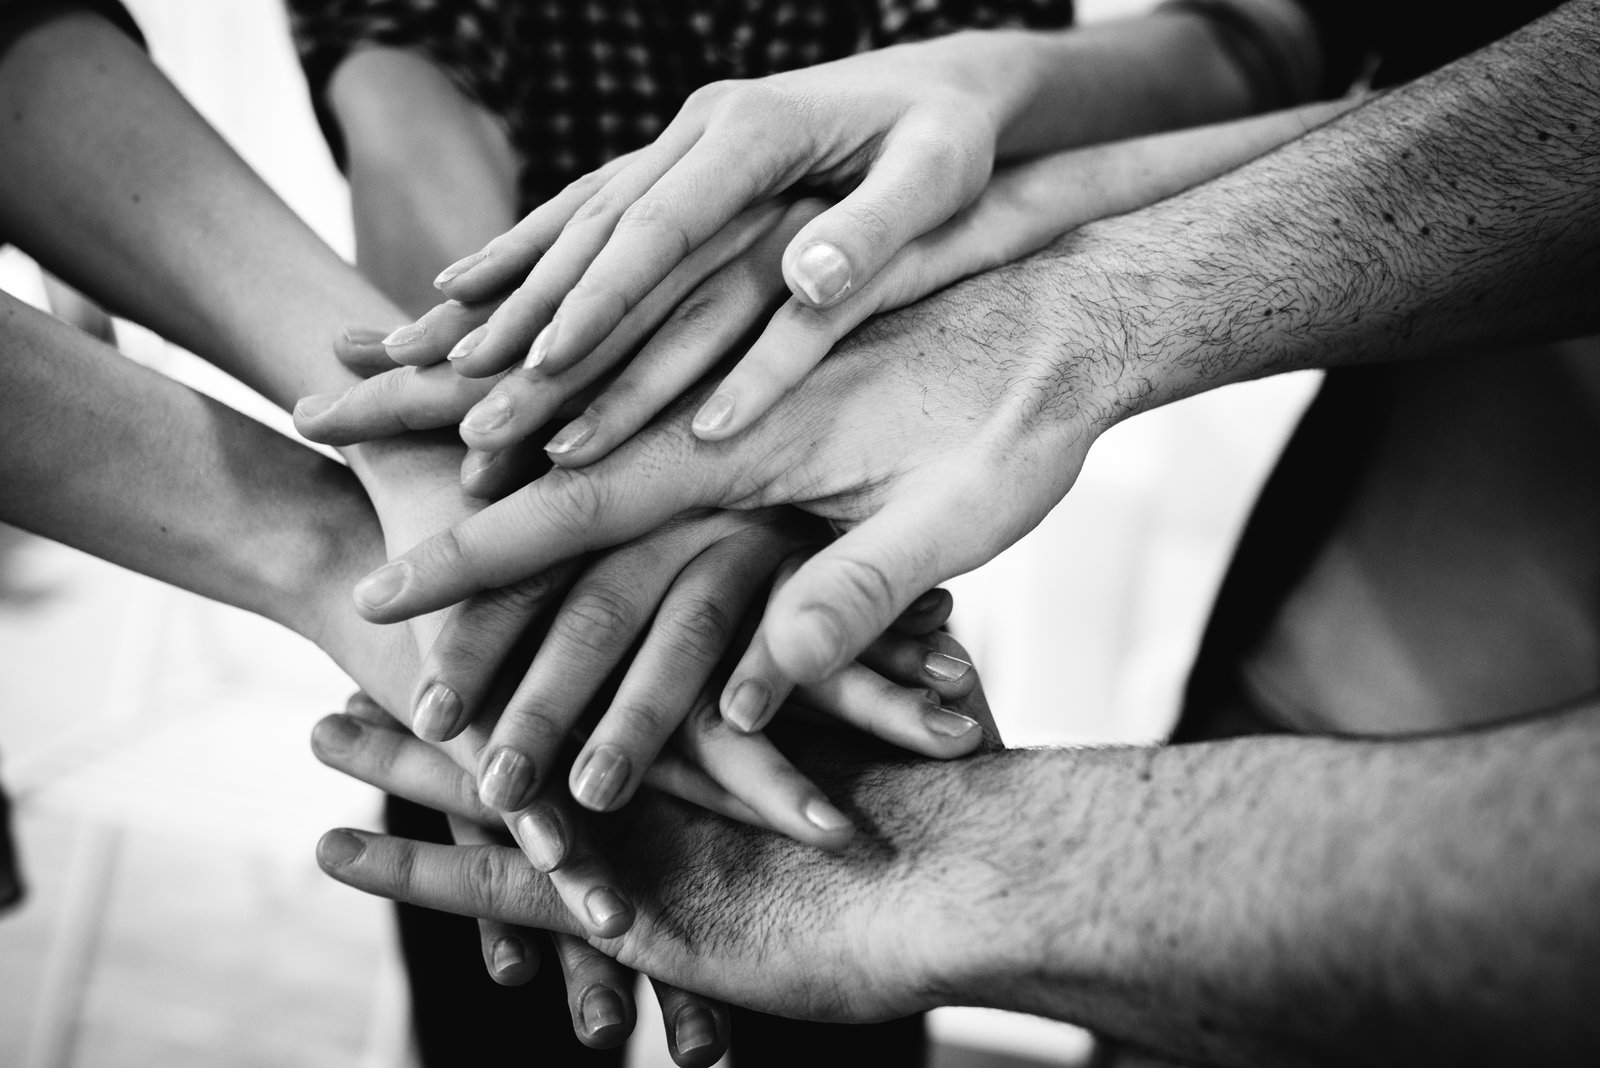 The Truth About Creating Impact: We Need Each Other